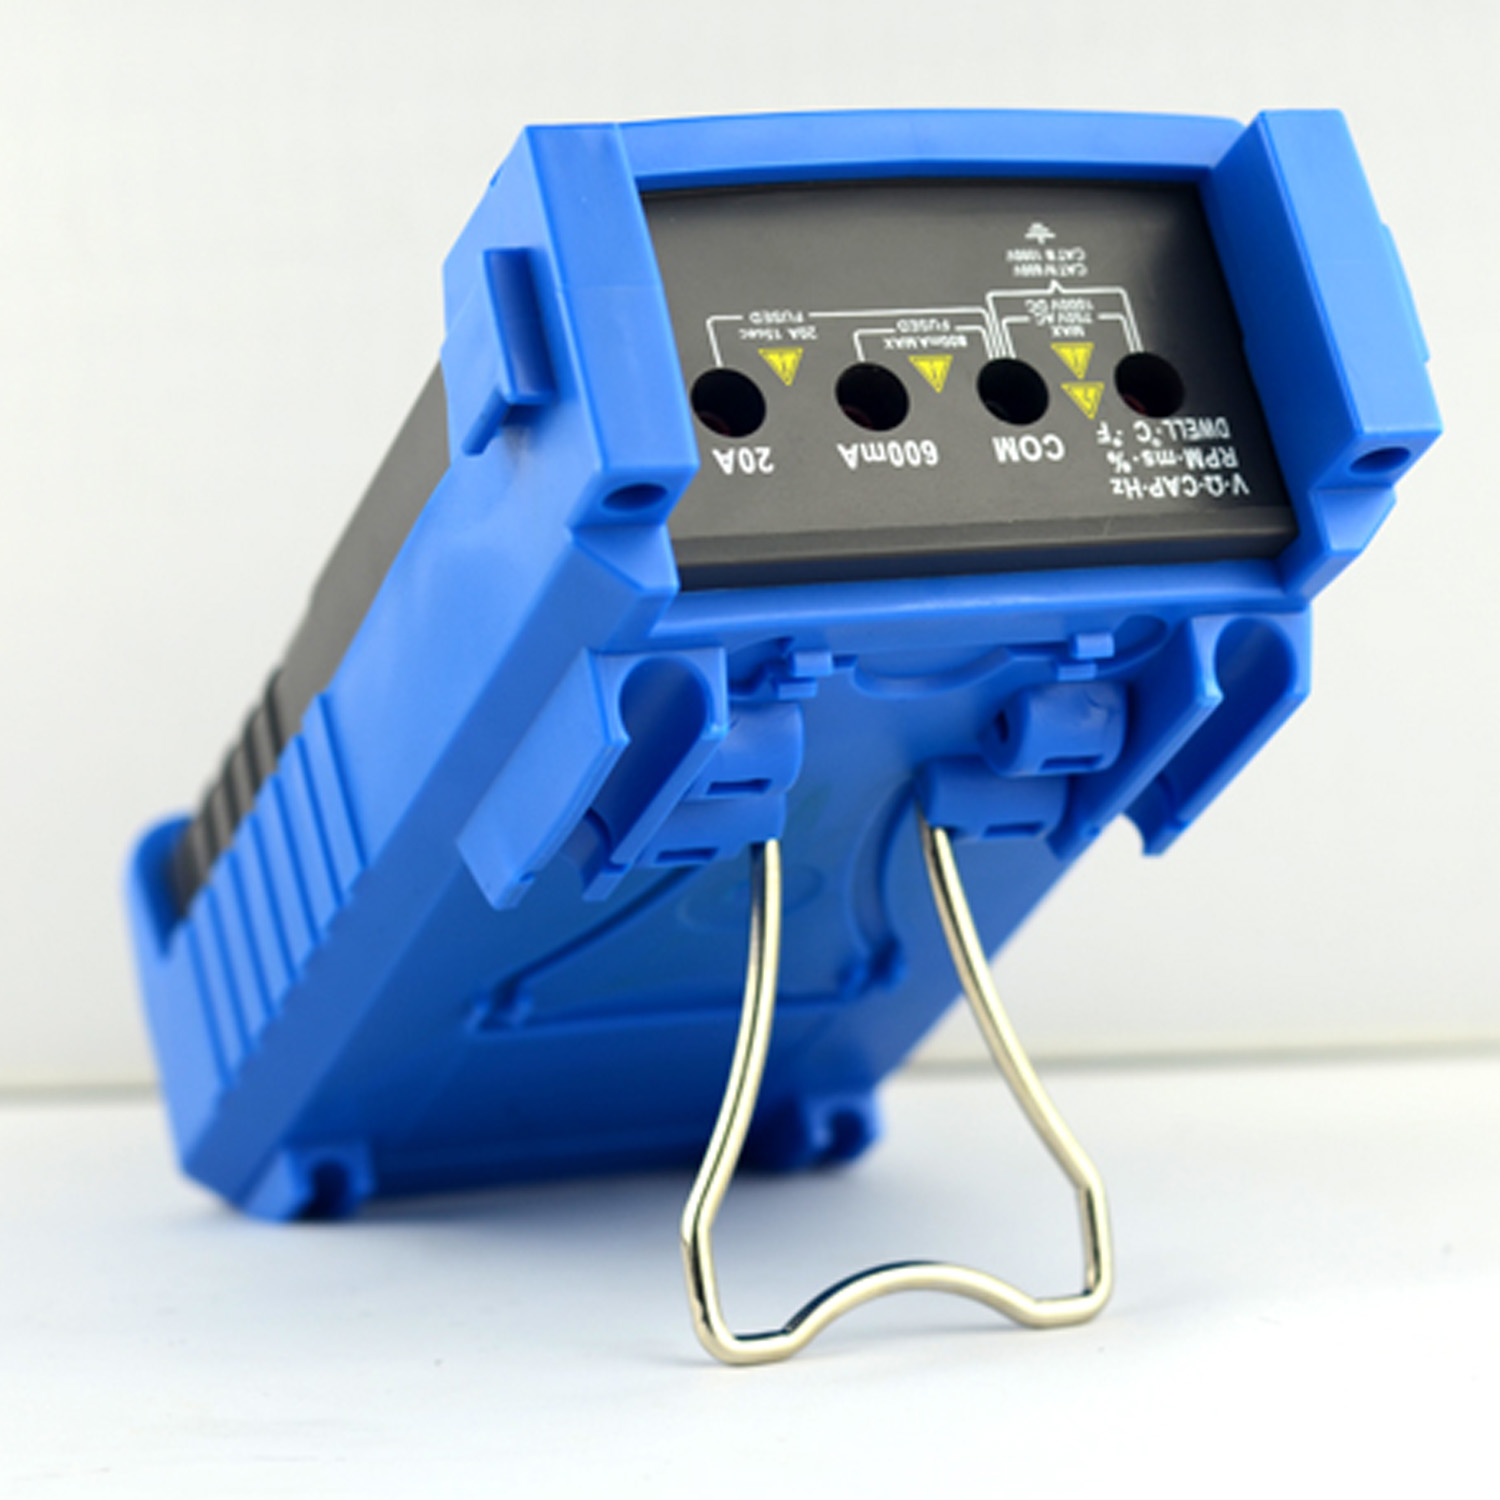 Top sun modular engine analyzer launchs manufacturers for testing-measuring instruments supplier- di-1